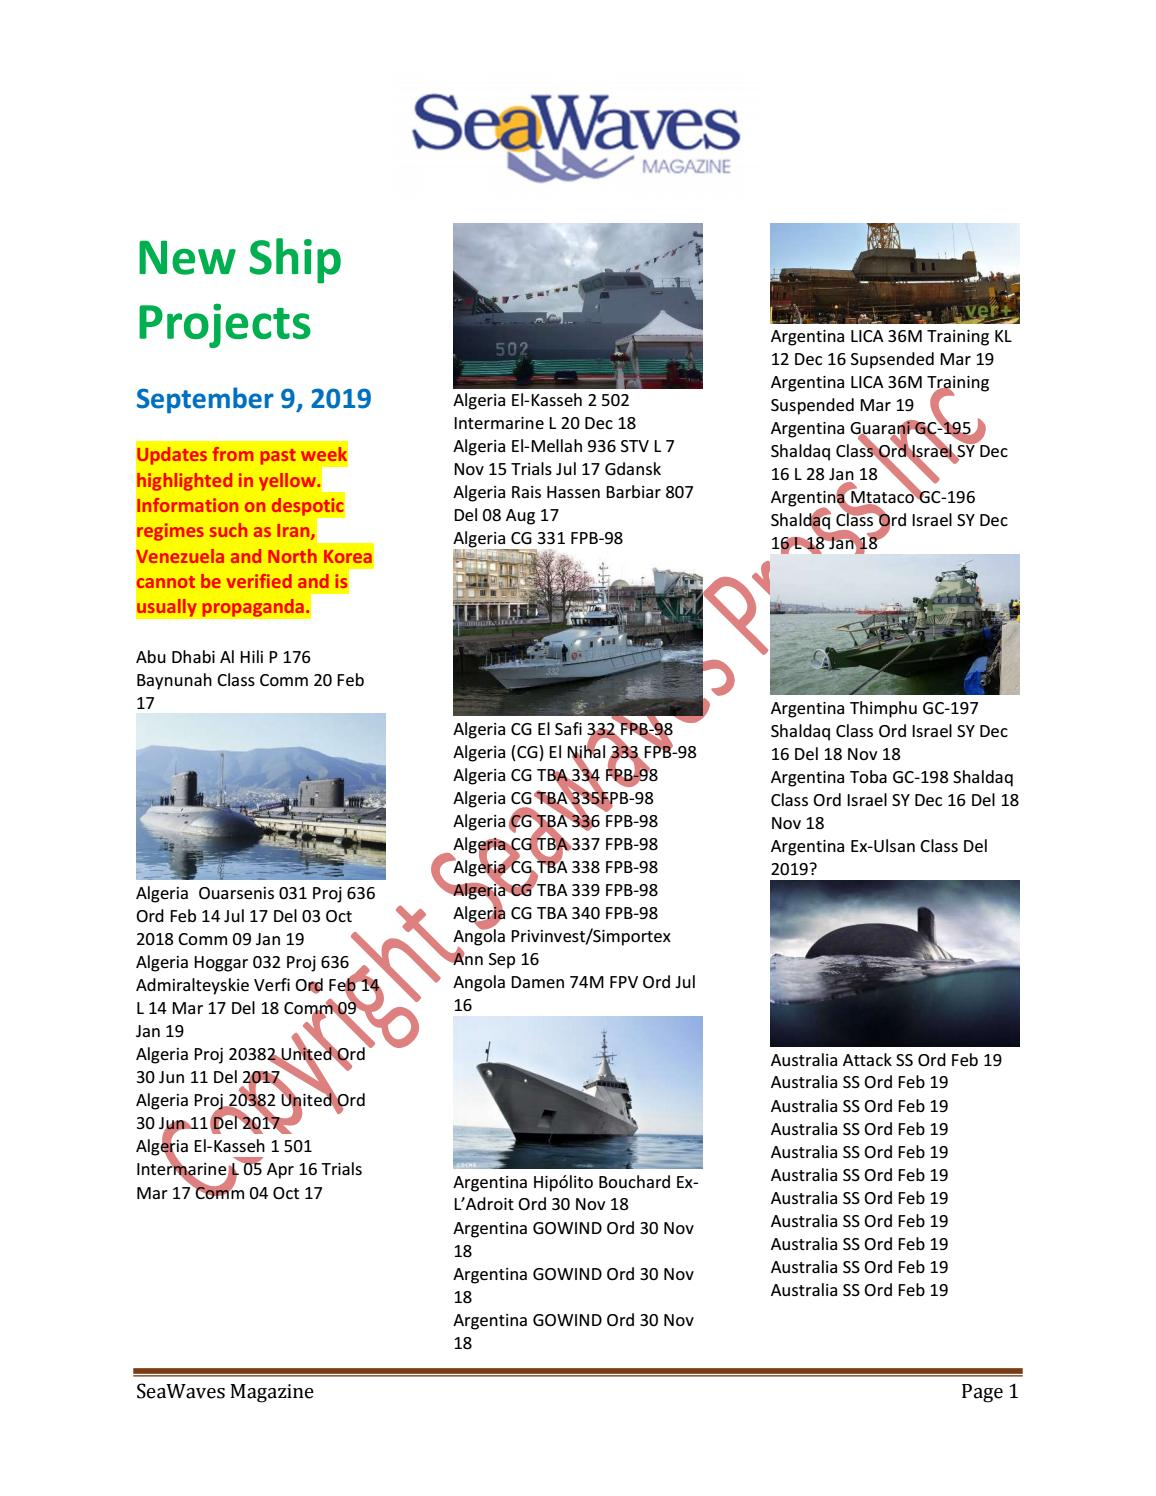 SeaWaves Press New Ship News August 26, 2019 by SeaWaves